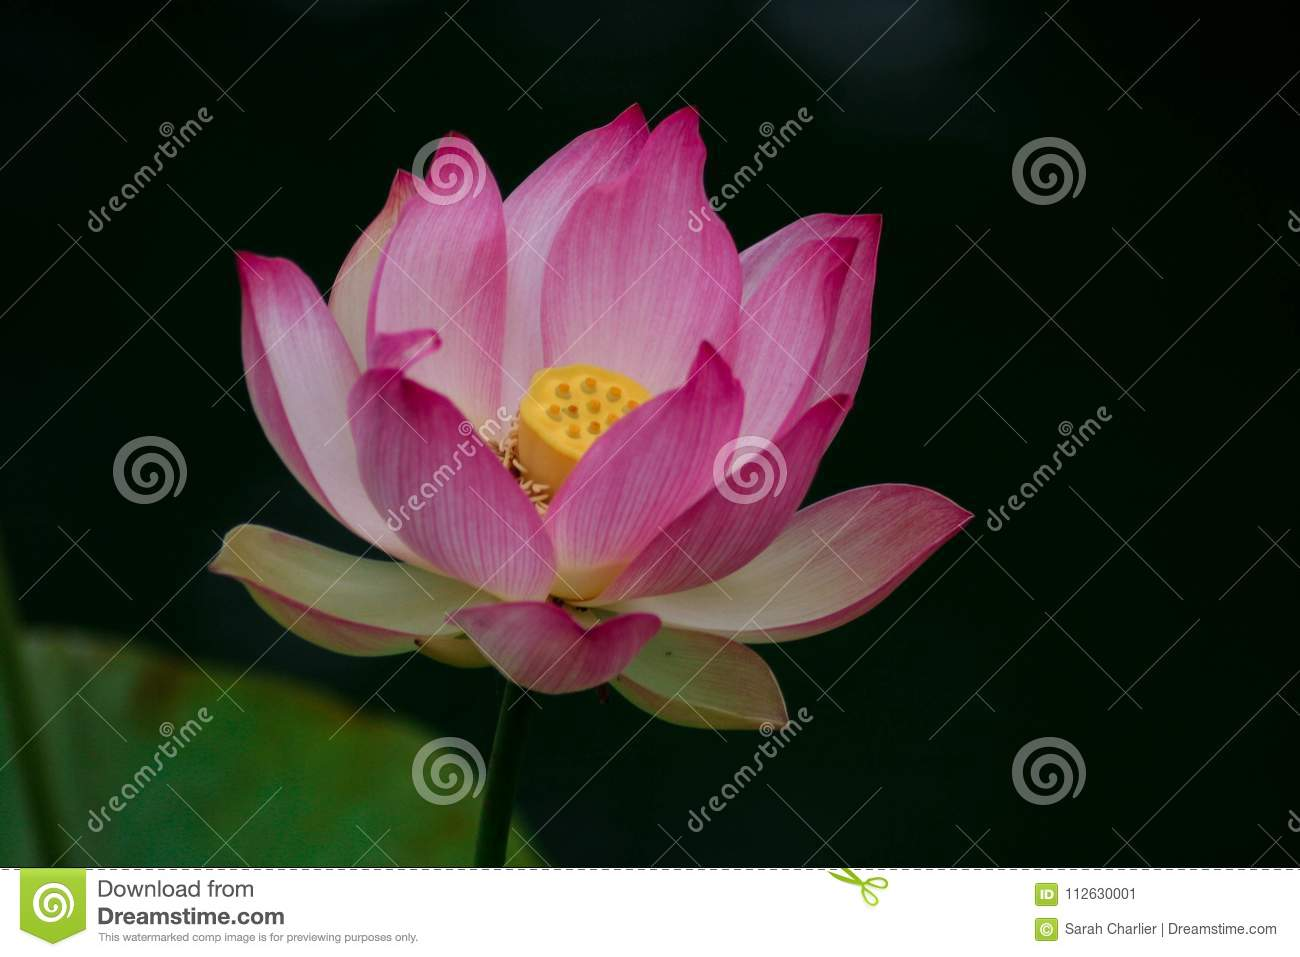 Lotus Flowers Symbolizing Growth And New Beginnings Stock Image